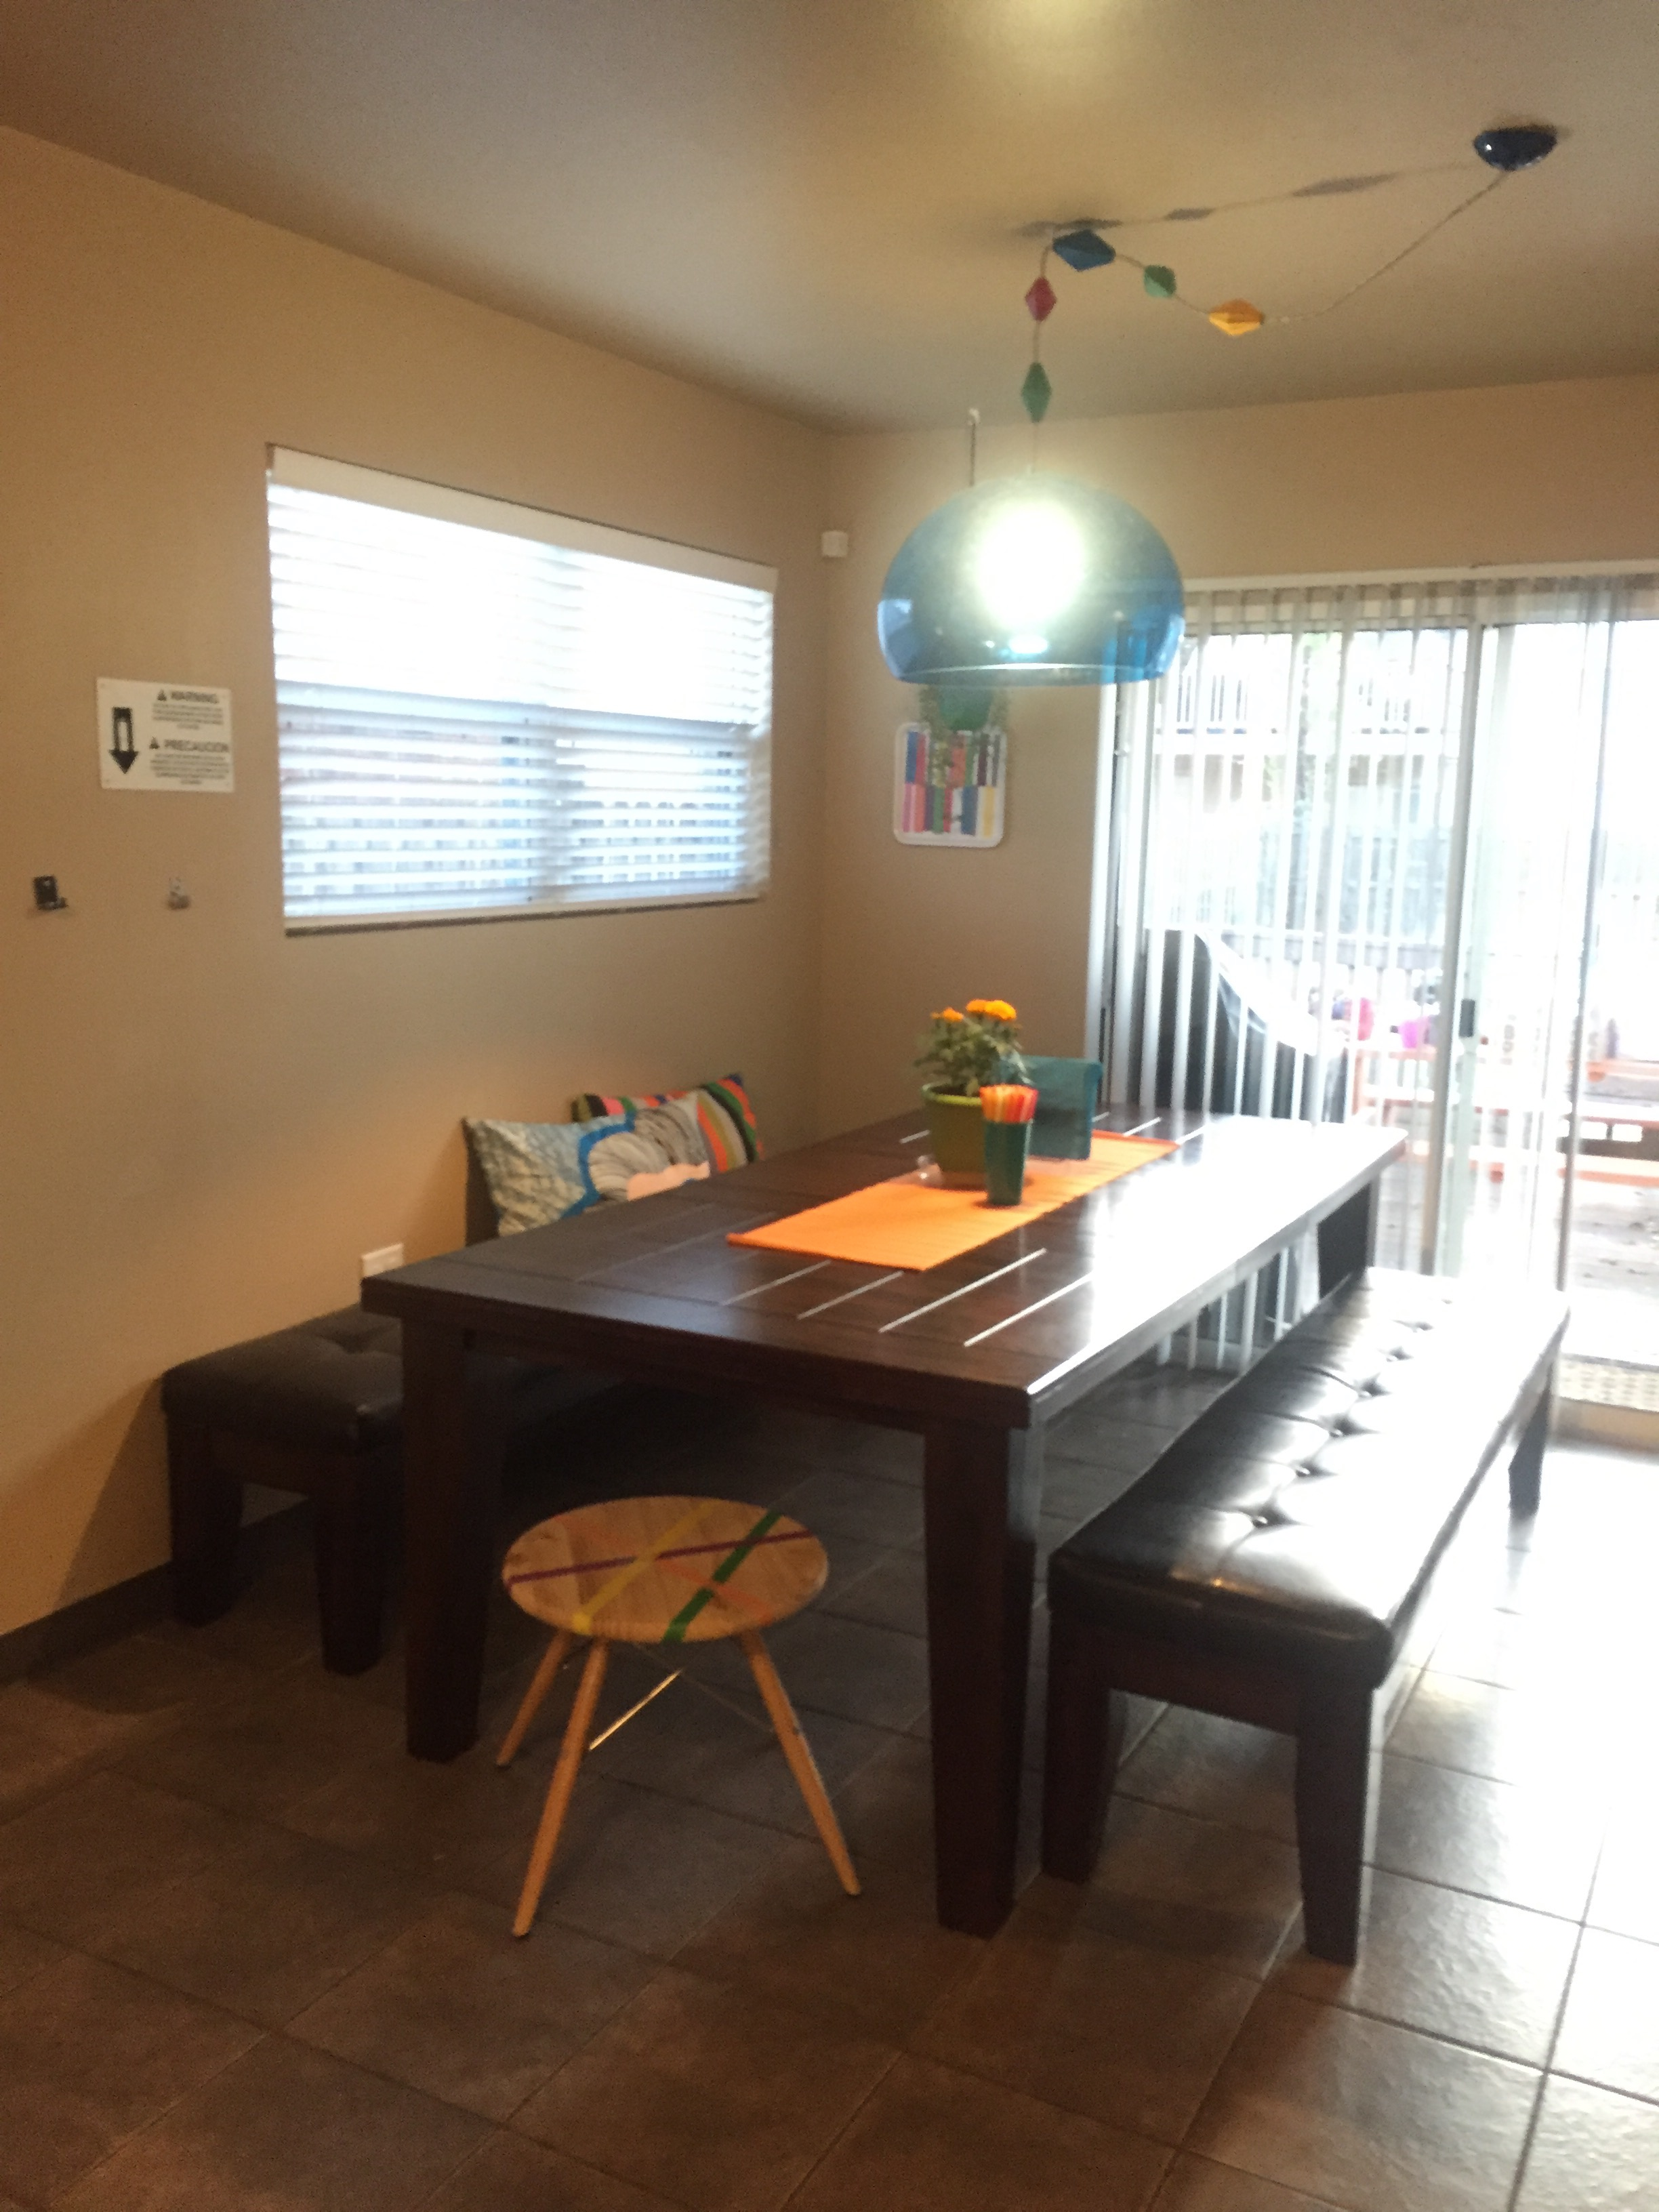 The kitchen was brightened with new lighting, pillows, and a few pops of color